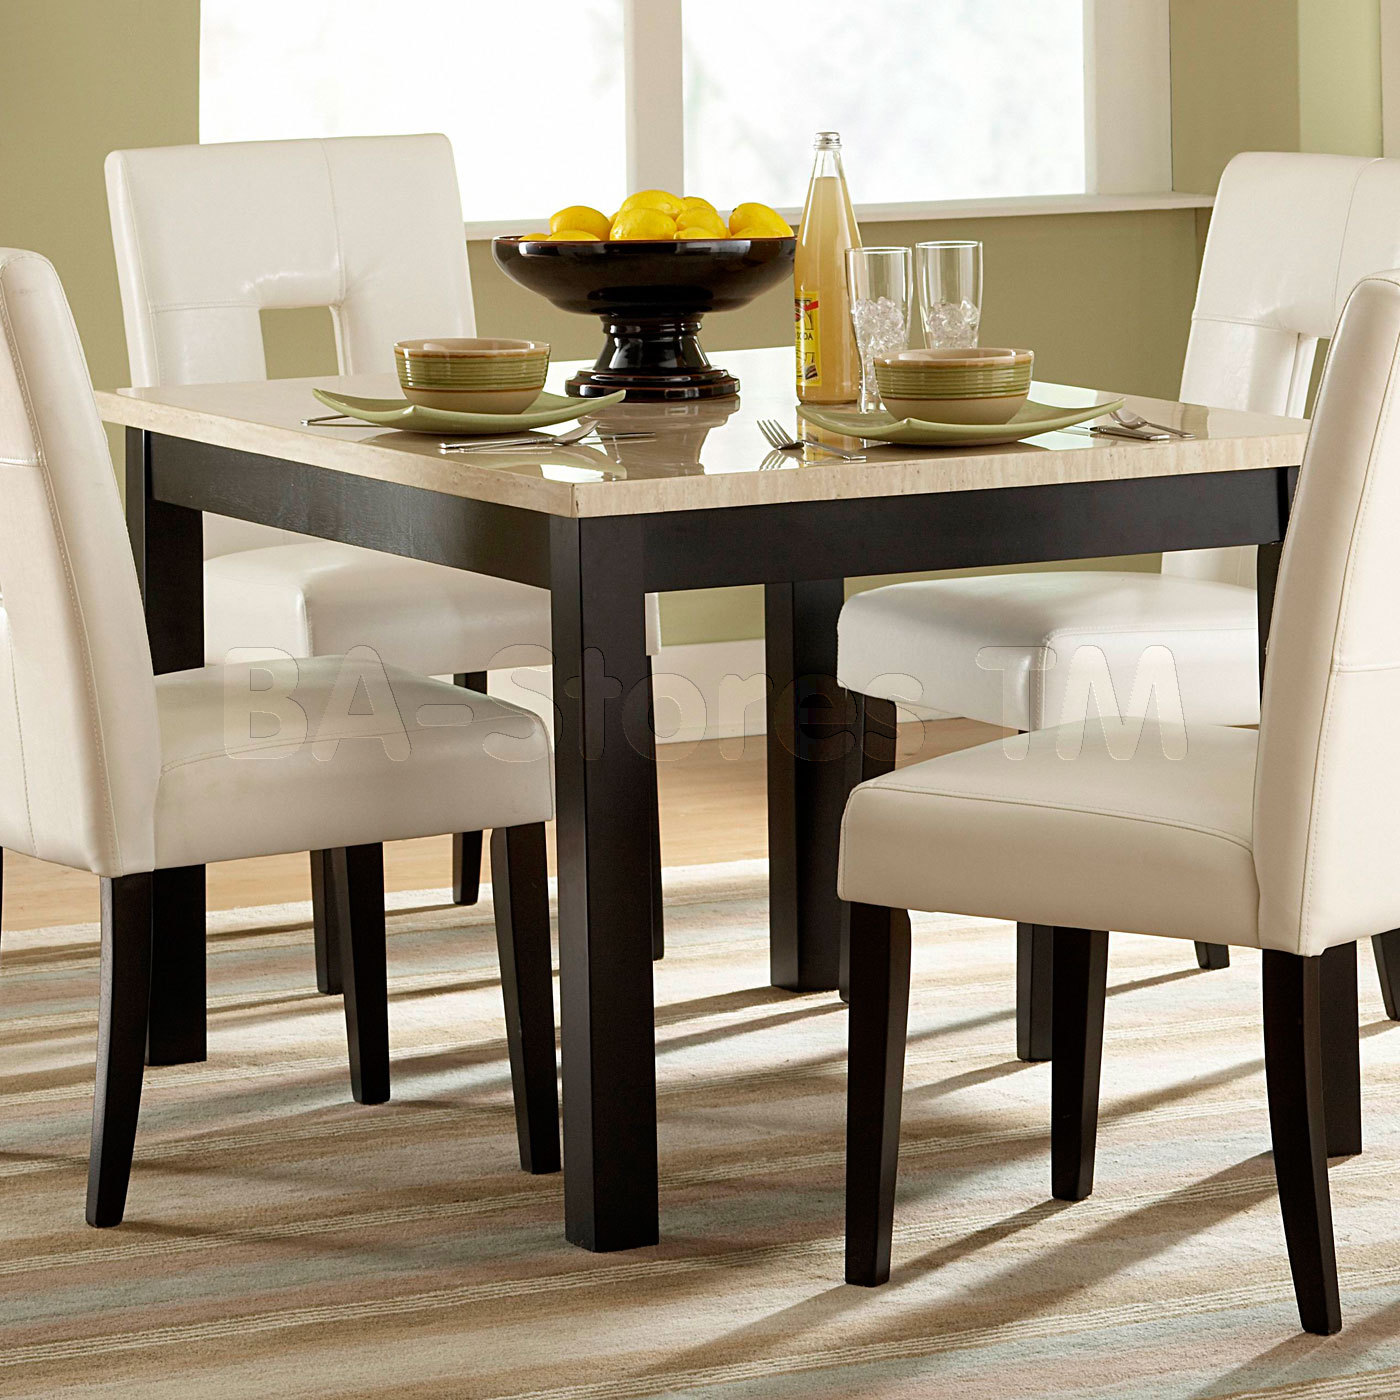 Dining Room Tables: Square Dining Table For 4